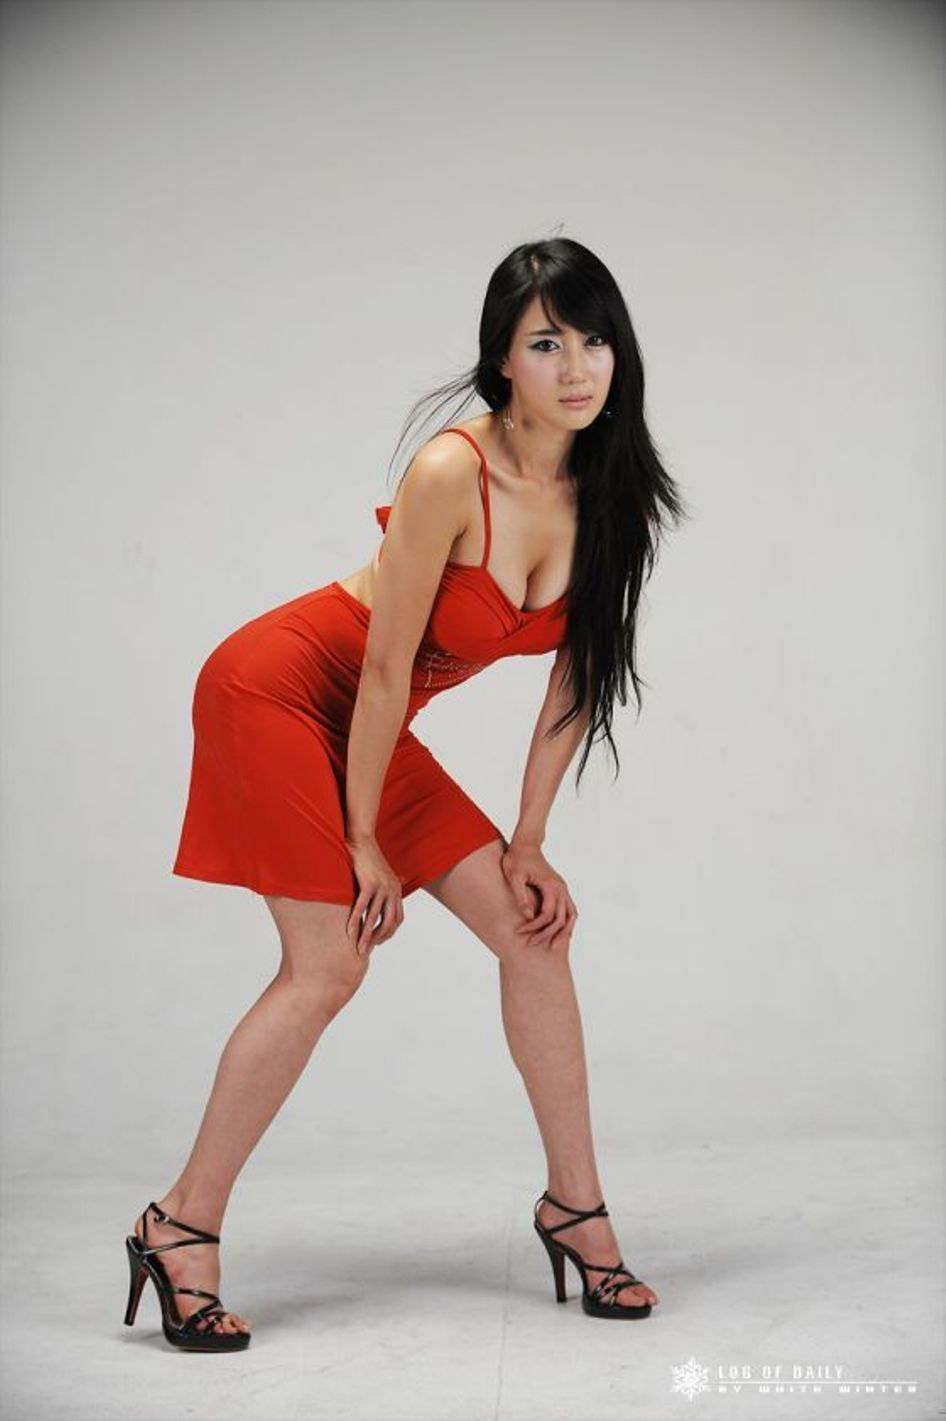 Han chae young hot photos Back Country Tours - ATV Tours, ATV Rentals